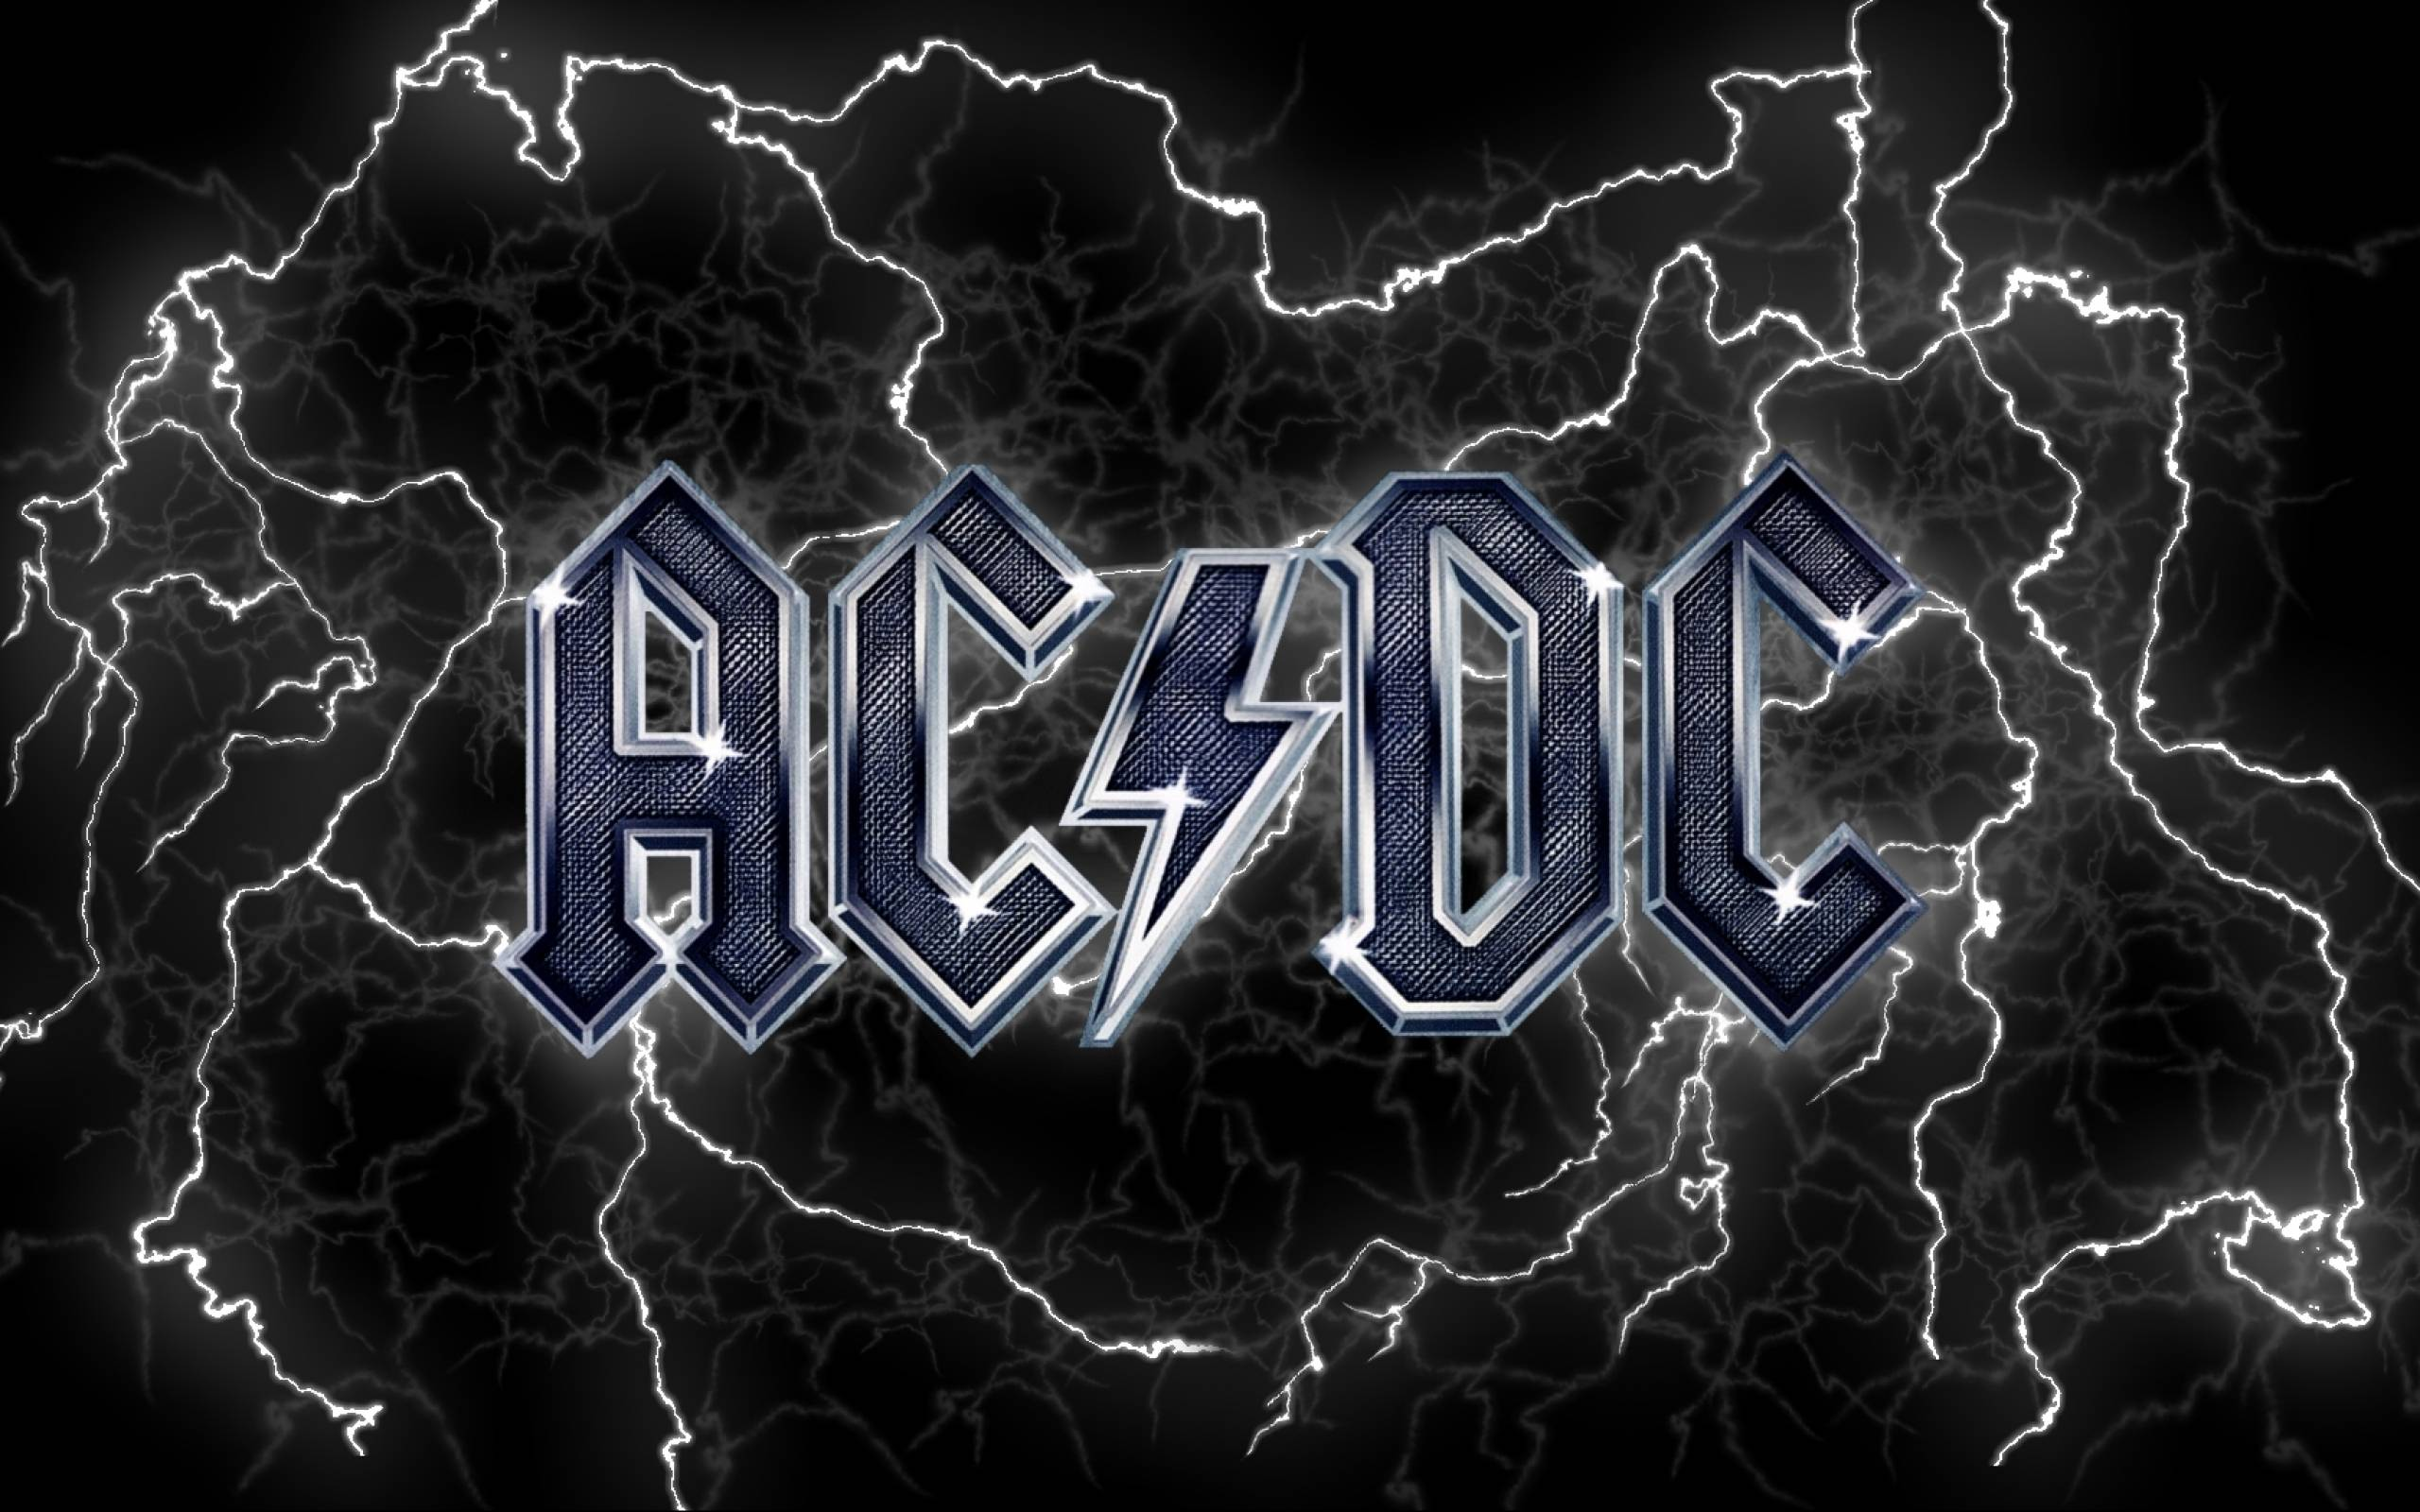 Ac Dc Wallpapers Wallpapers Hd 3d taken from Music Acdc Wallpapers